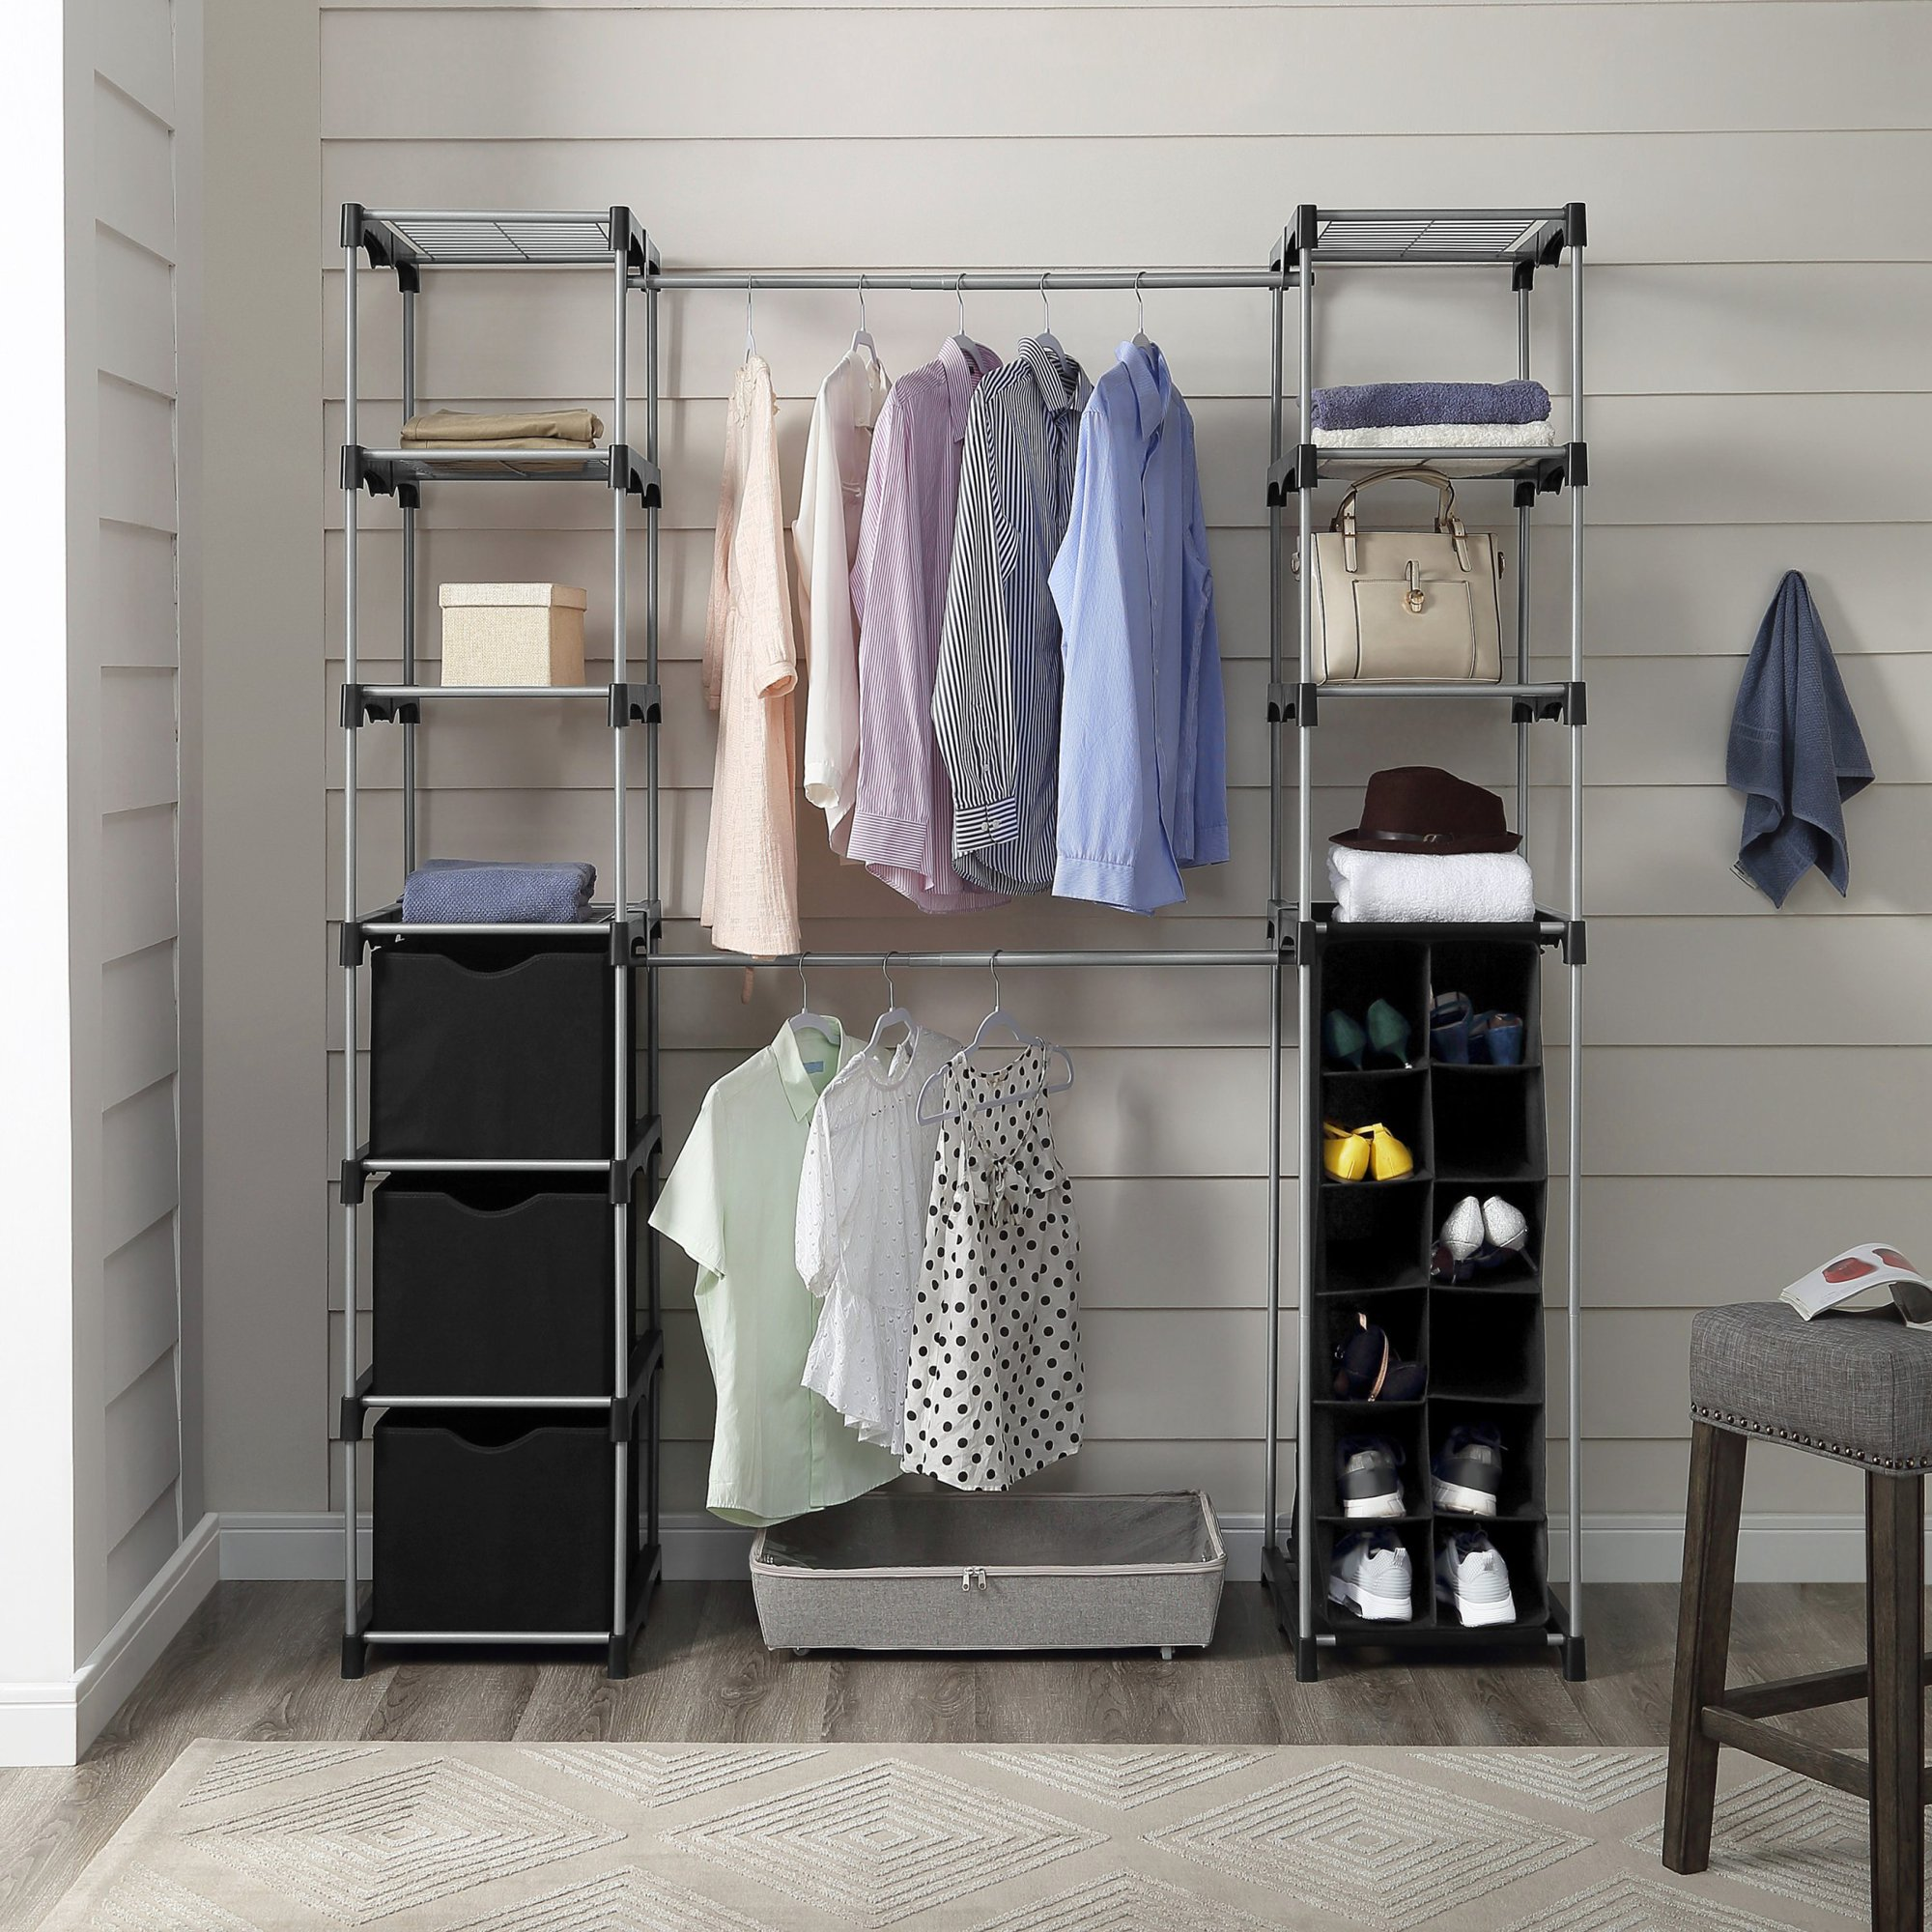 Great closet system